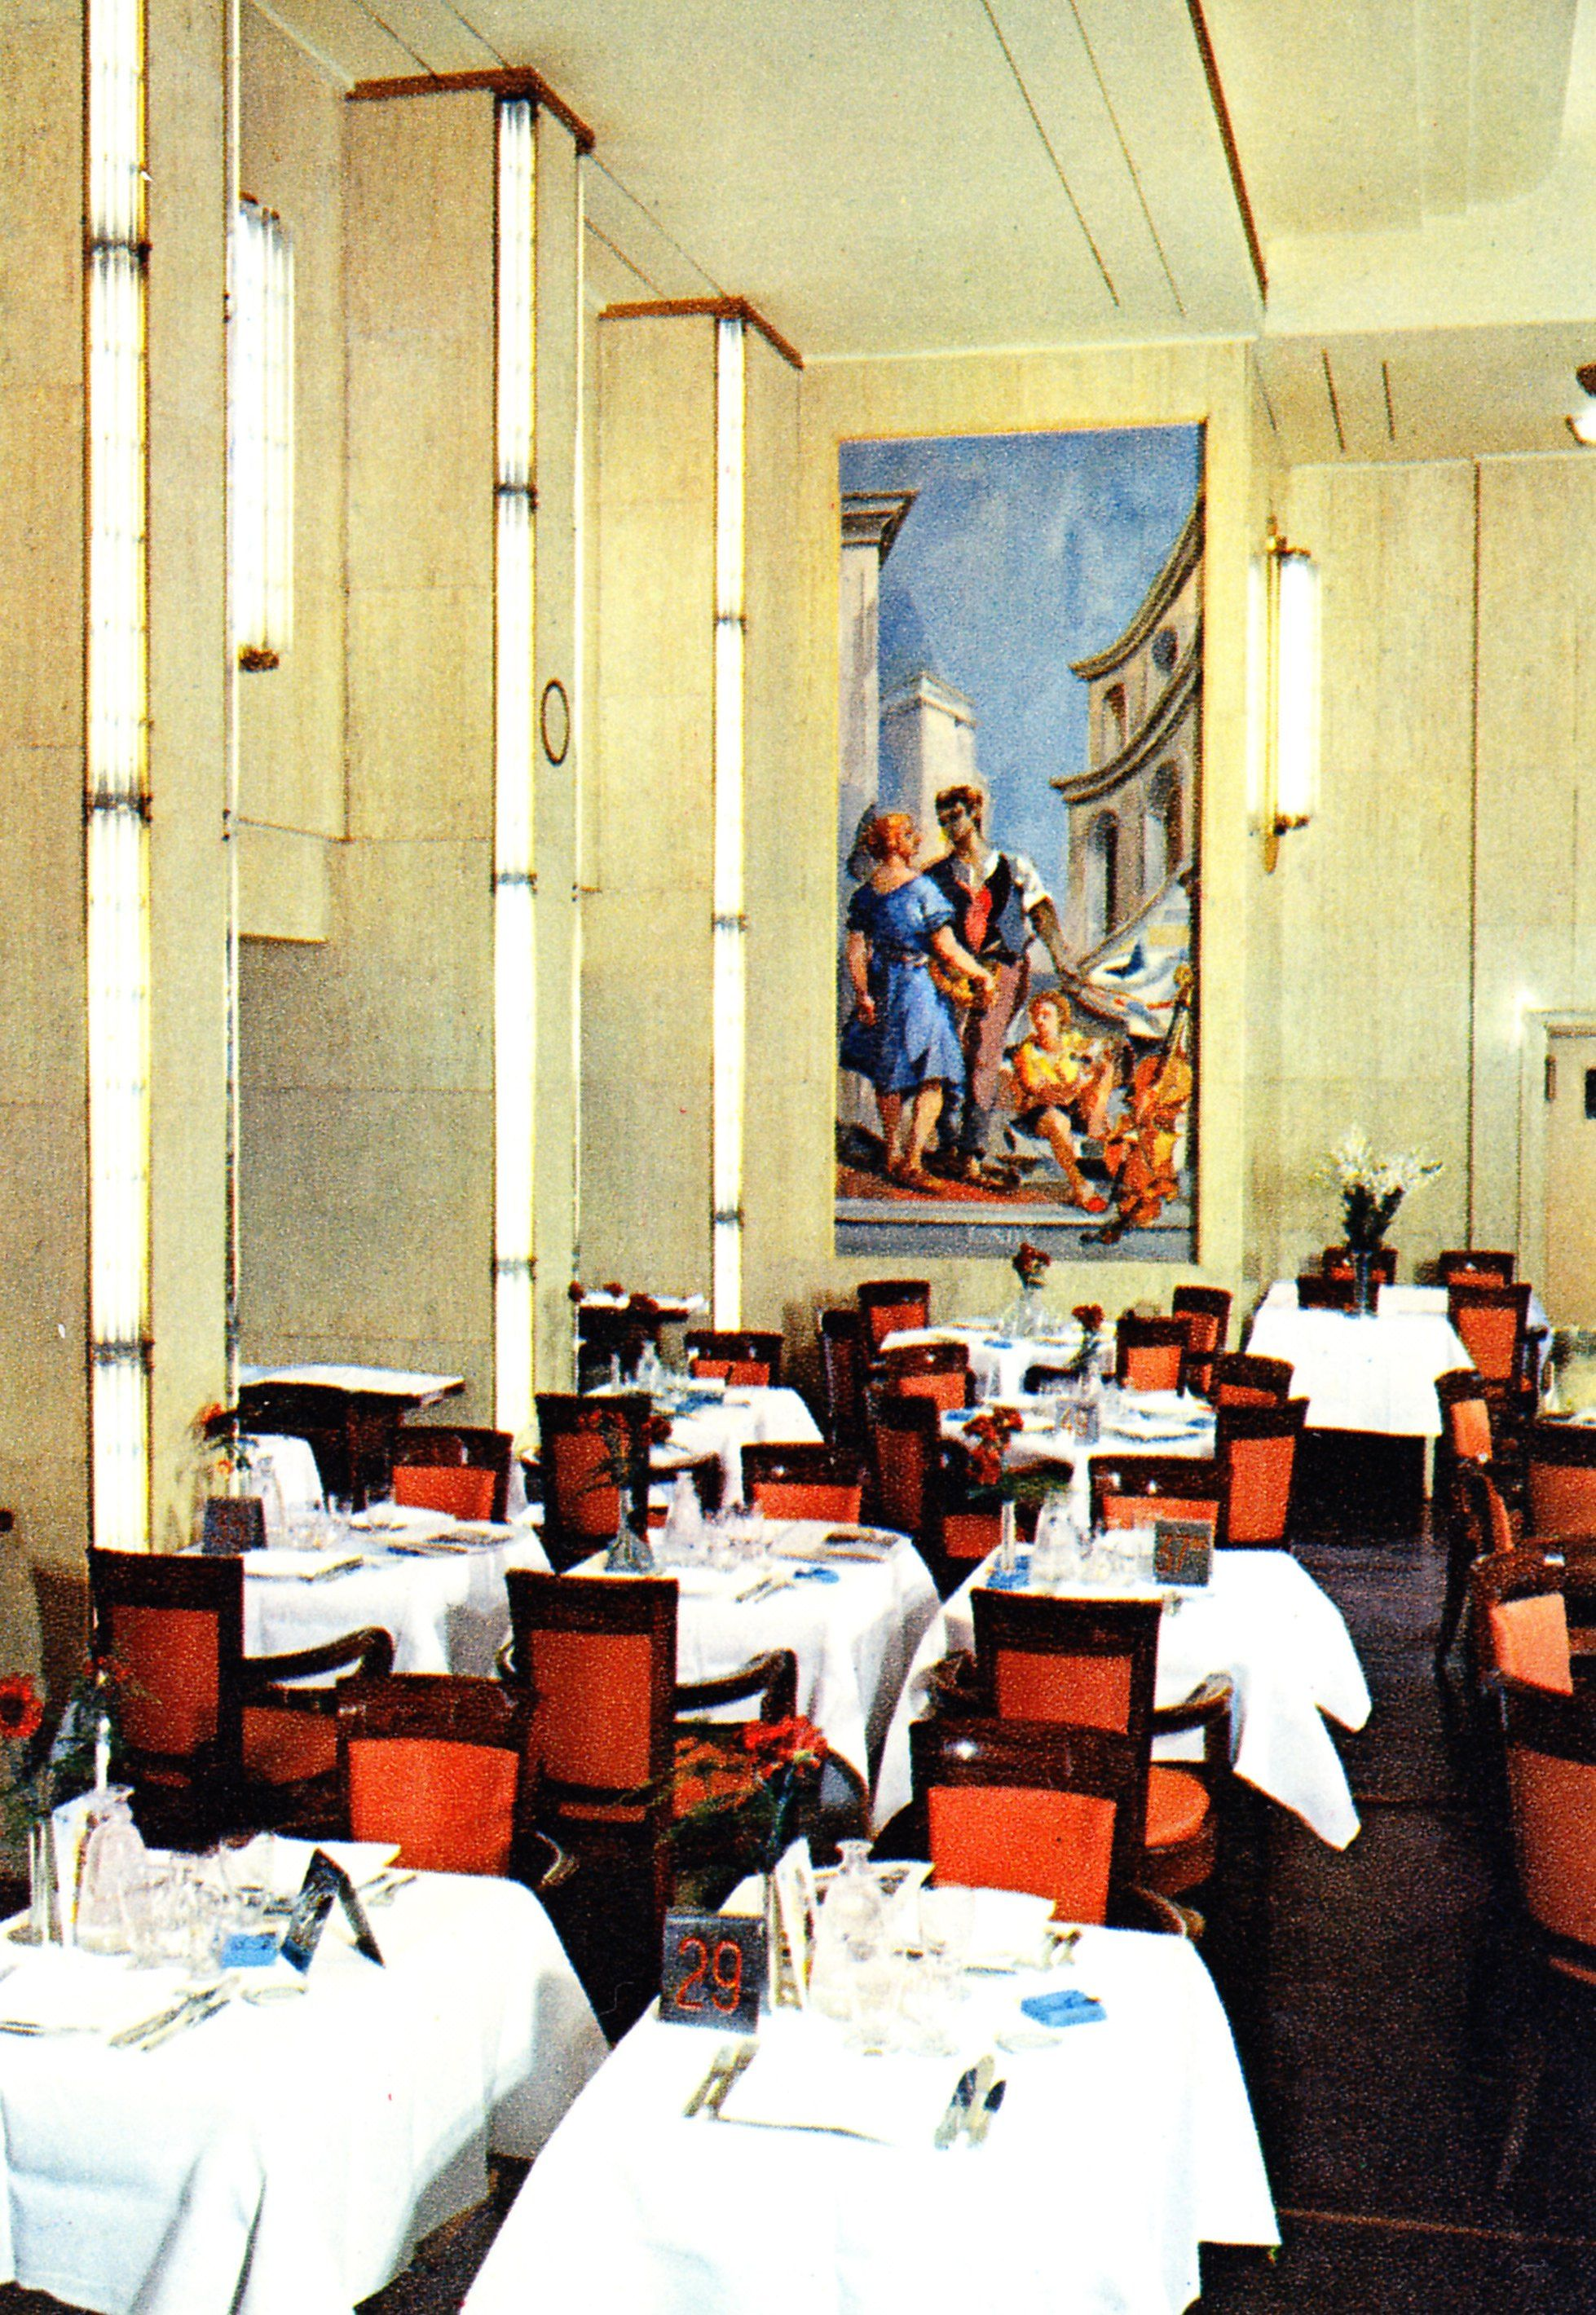 "Corner panel, one of a series entitled ""The Four Elements"", of the First Class Salle de Manger (Dining Room) of the Liberté, flagship of the Compagnie Générale Transatlantique/The French Line. 1950. Image courtesy the private collection of John Cunard-Shutter."